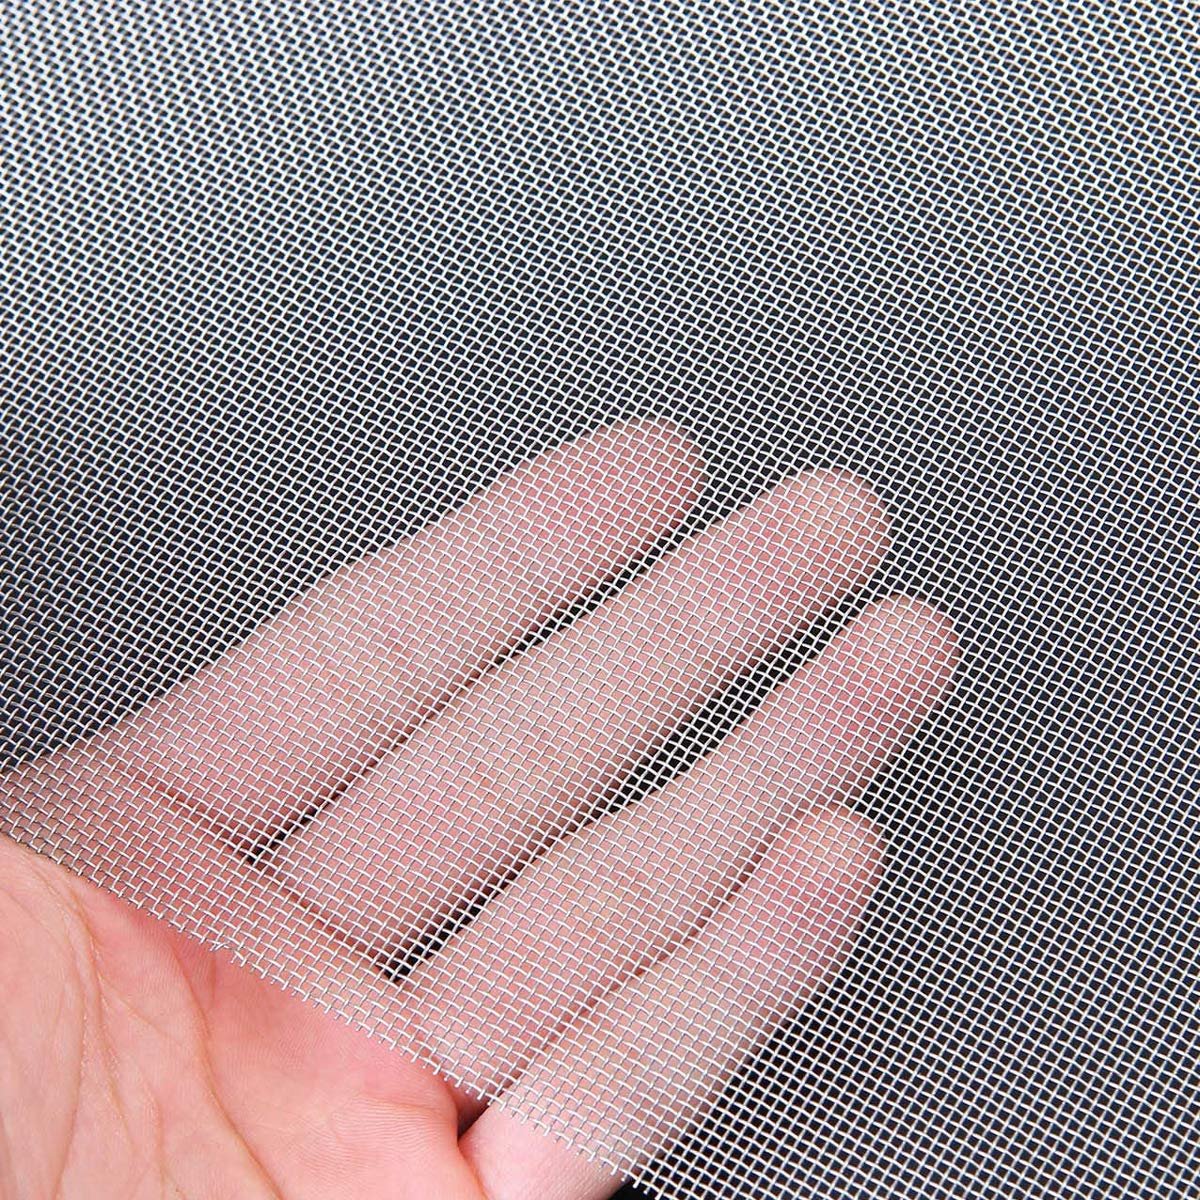 304 Stainless Steel Wire Mesh Screen Jacksonville Mall Ranking TOP5 20 Hole 30 6 0.9mm x